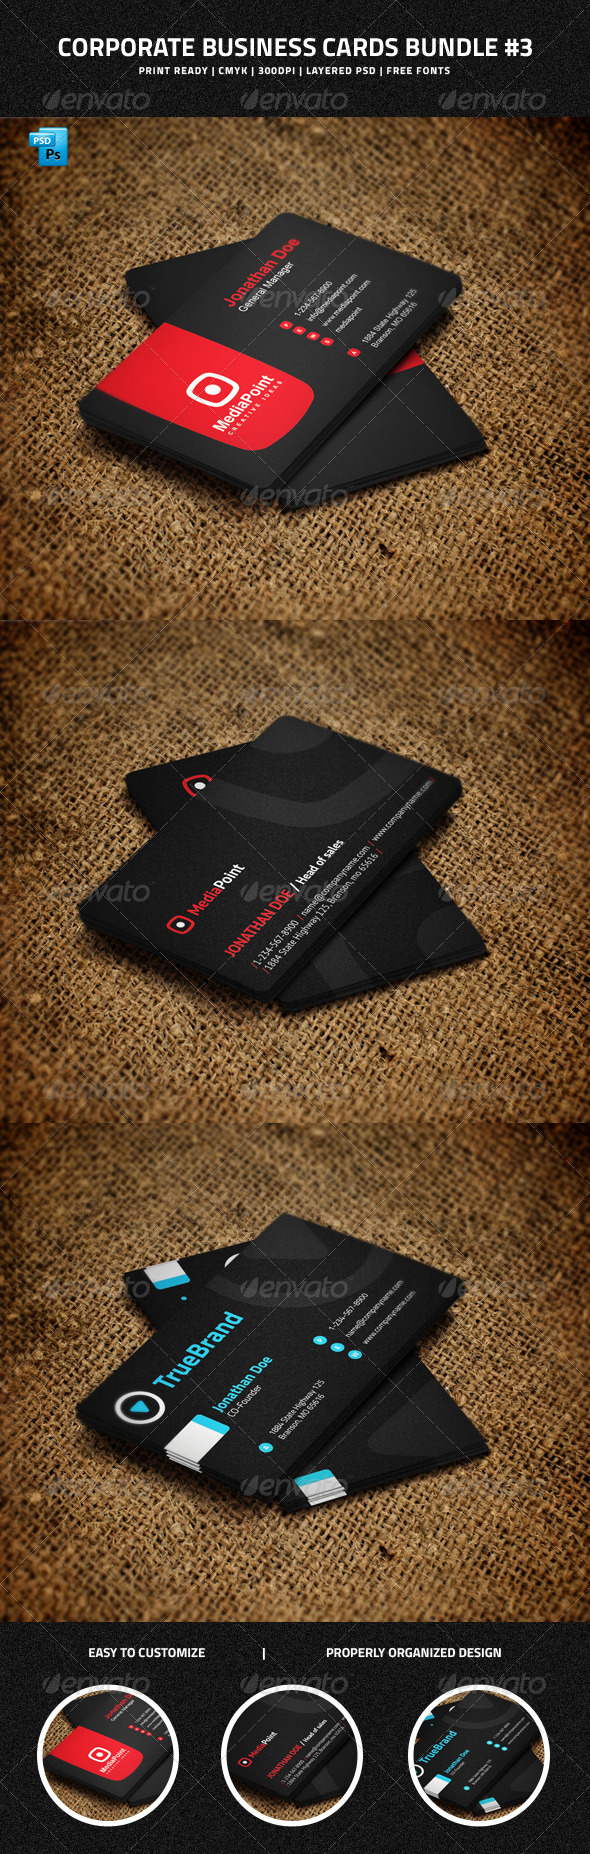 GraphicRiver Corporate Business Cards Bundle #3 6775546